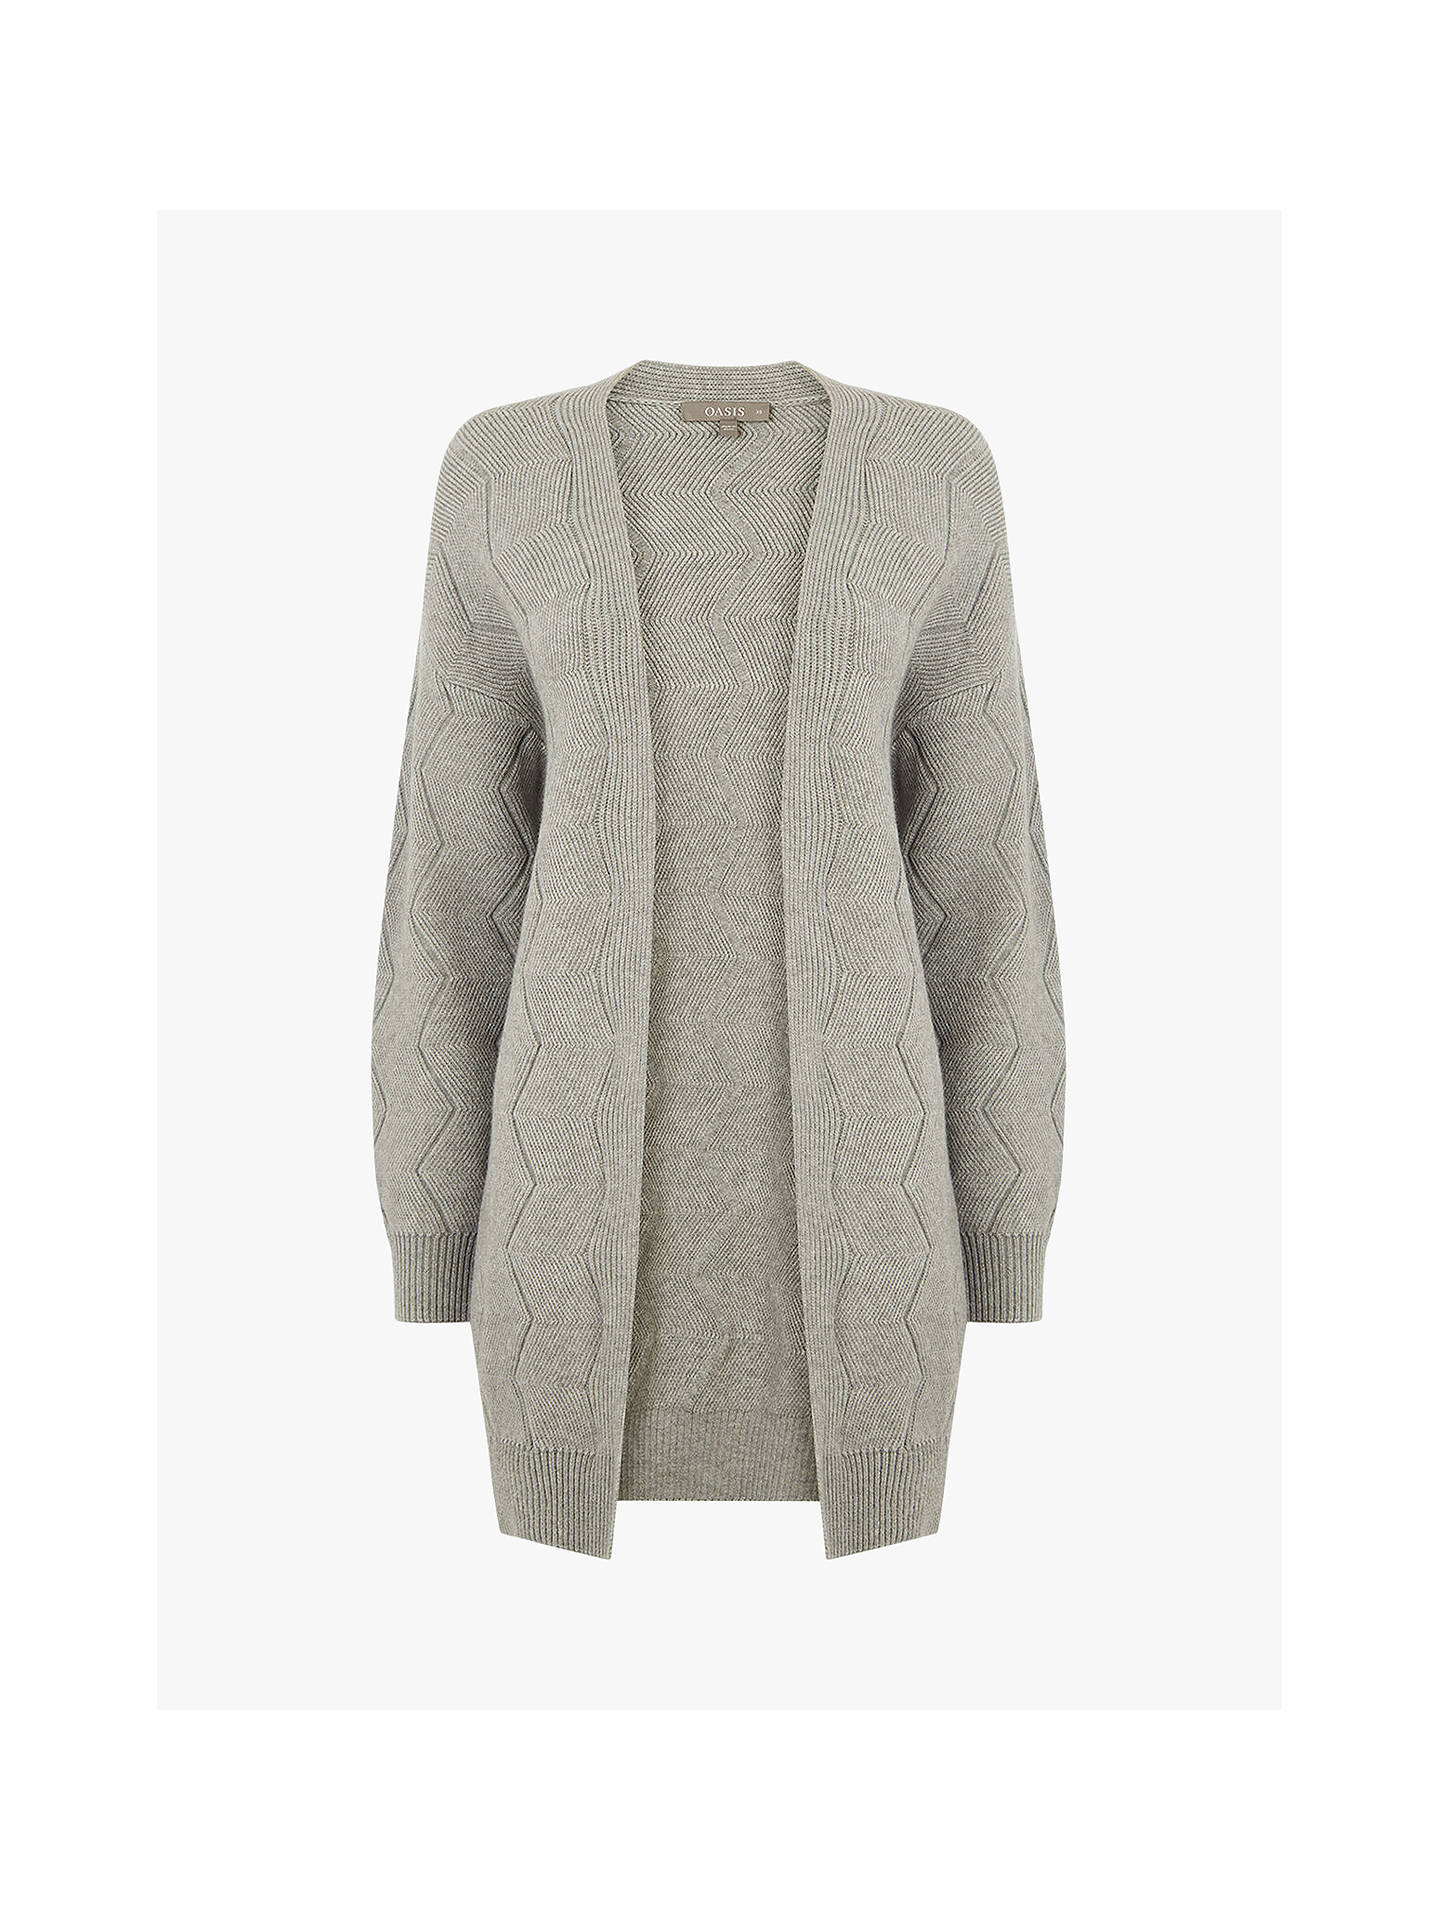 M /& S COLLECTION PURE CASHMERE SILVER GREY MULTI STITCH OPEN FRONT CARDIGAN